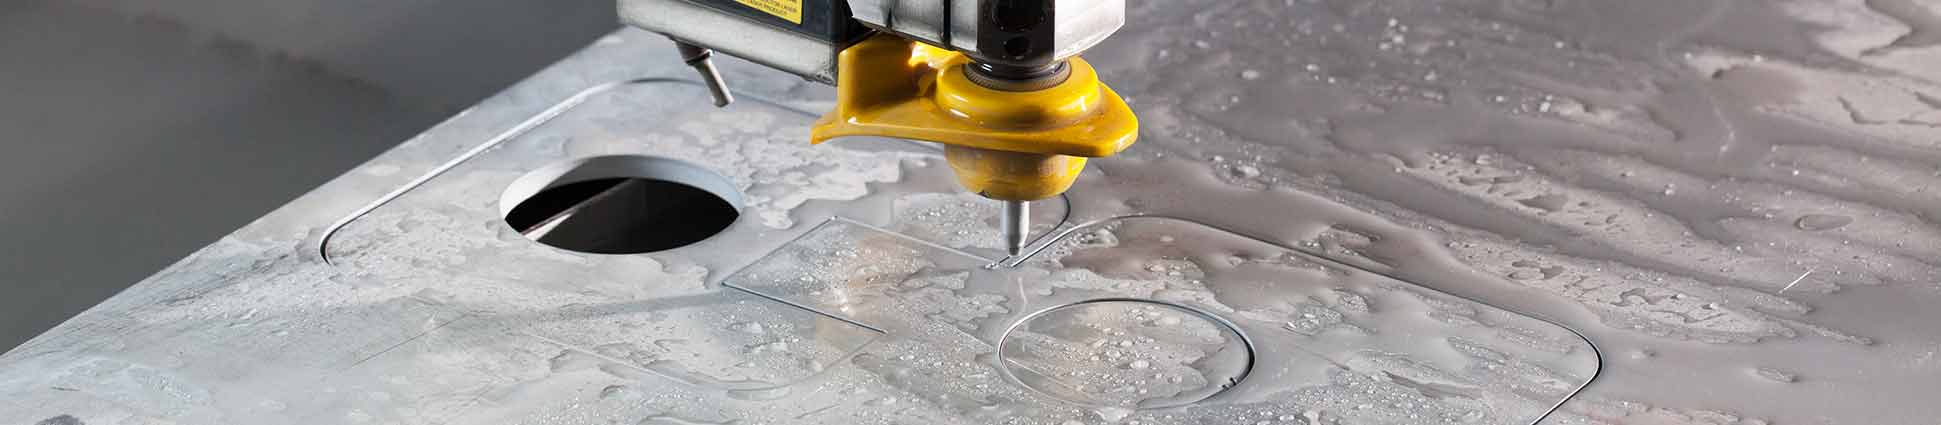 Waterjet with yellow spray shield, cutting geometric pattern on metal material